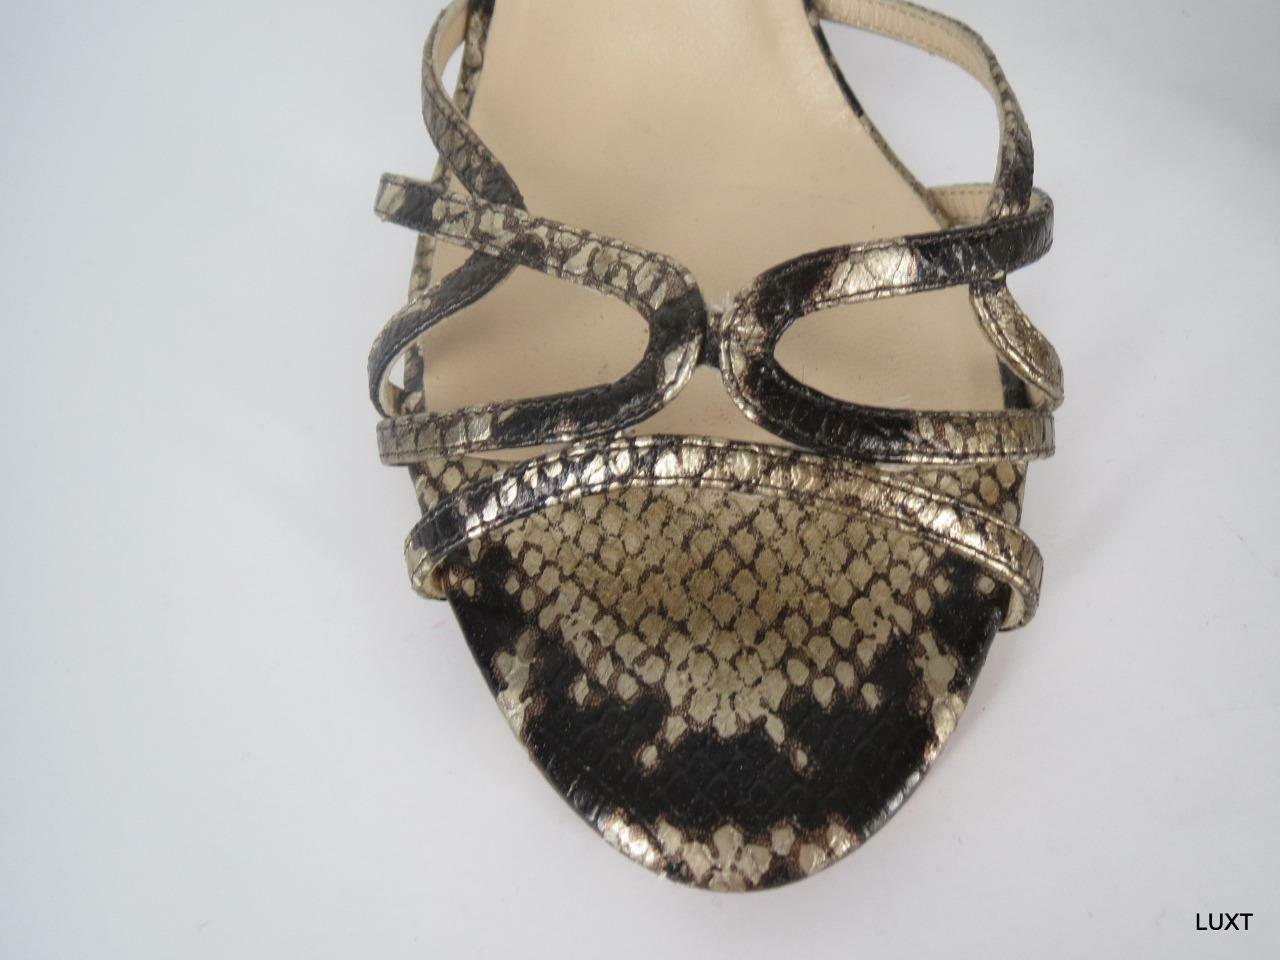 wholesape economico Jimmy Choo Heels Heels Heels Sandals Slides Dimensione 41 11 Leather Marrone Metallic Snake Print  migliore marca